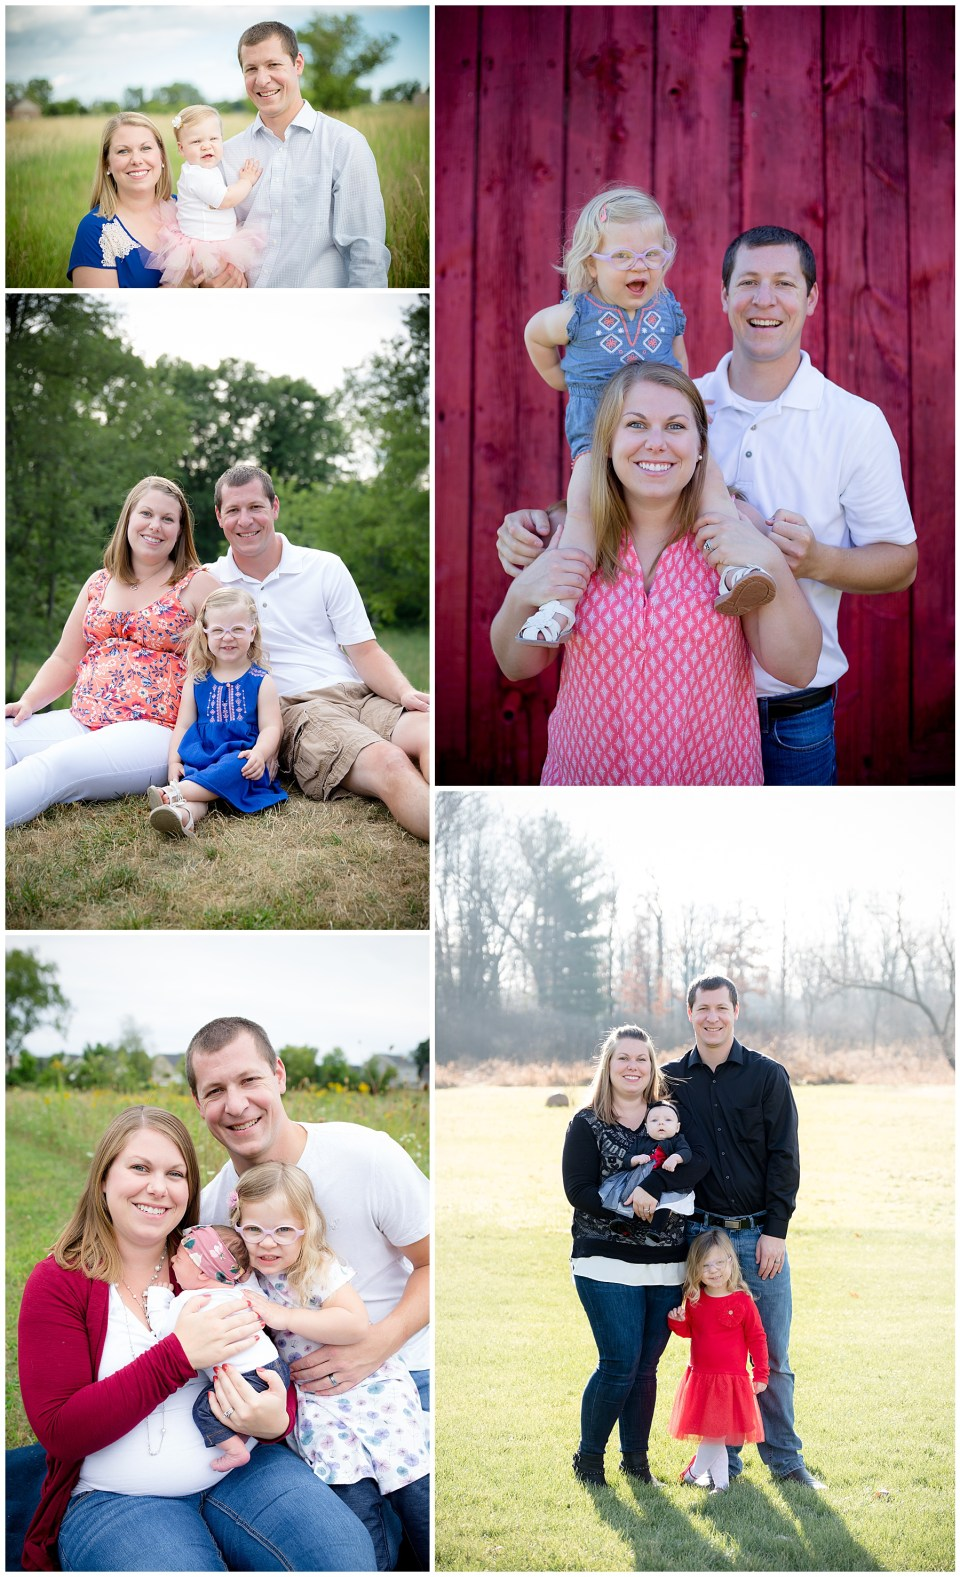 Collage of 5 photos of a family over a span of 4 years